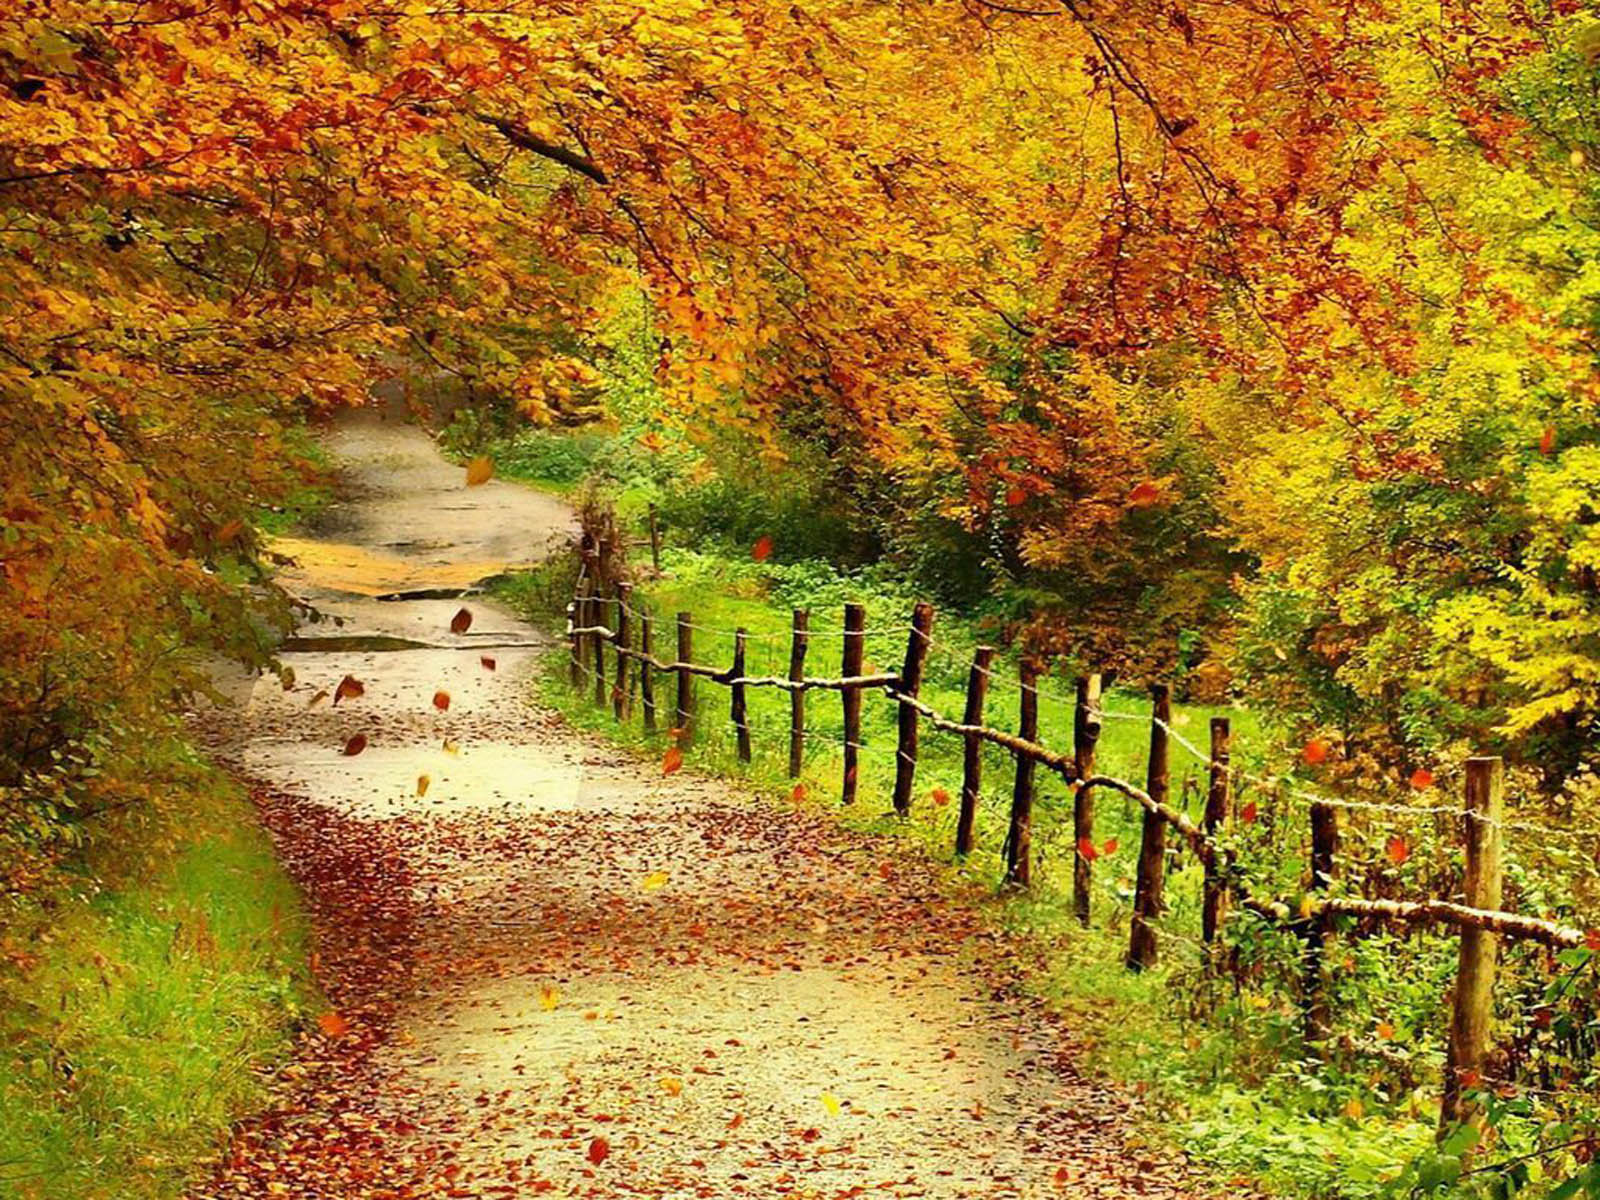 Tag Beautiful Autumn Scenery Wallpapers Backgrounds Photos Images 1600x1200